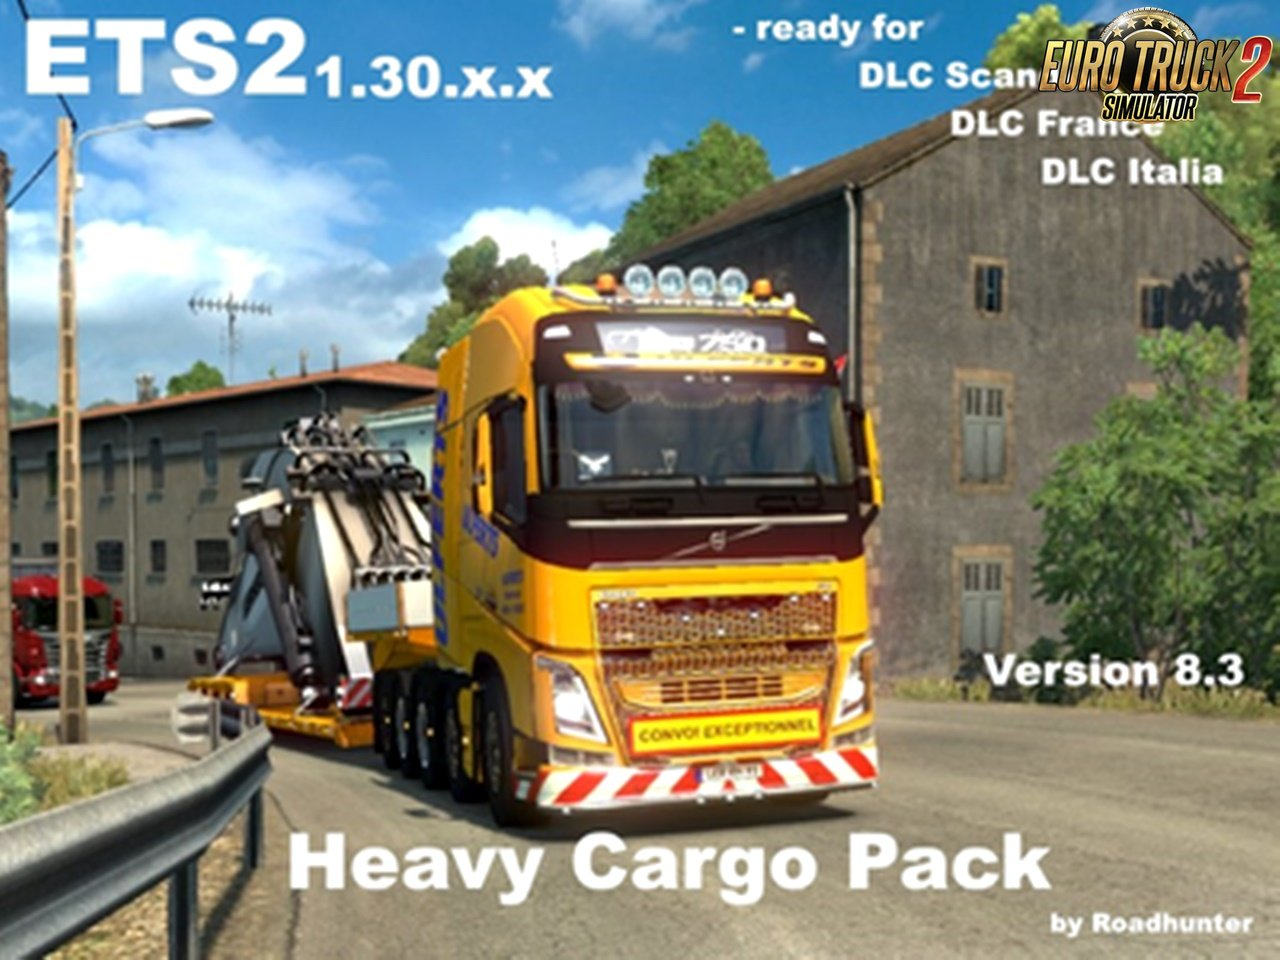 63 Heavy Cargo Pack v8.3 for Ets2